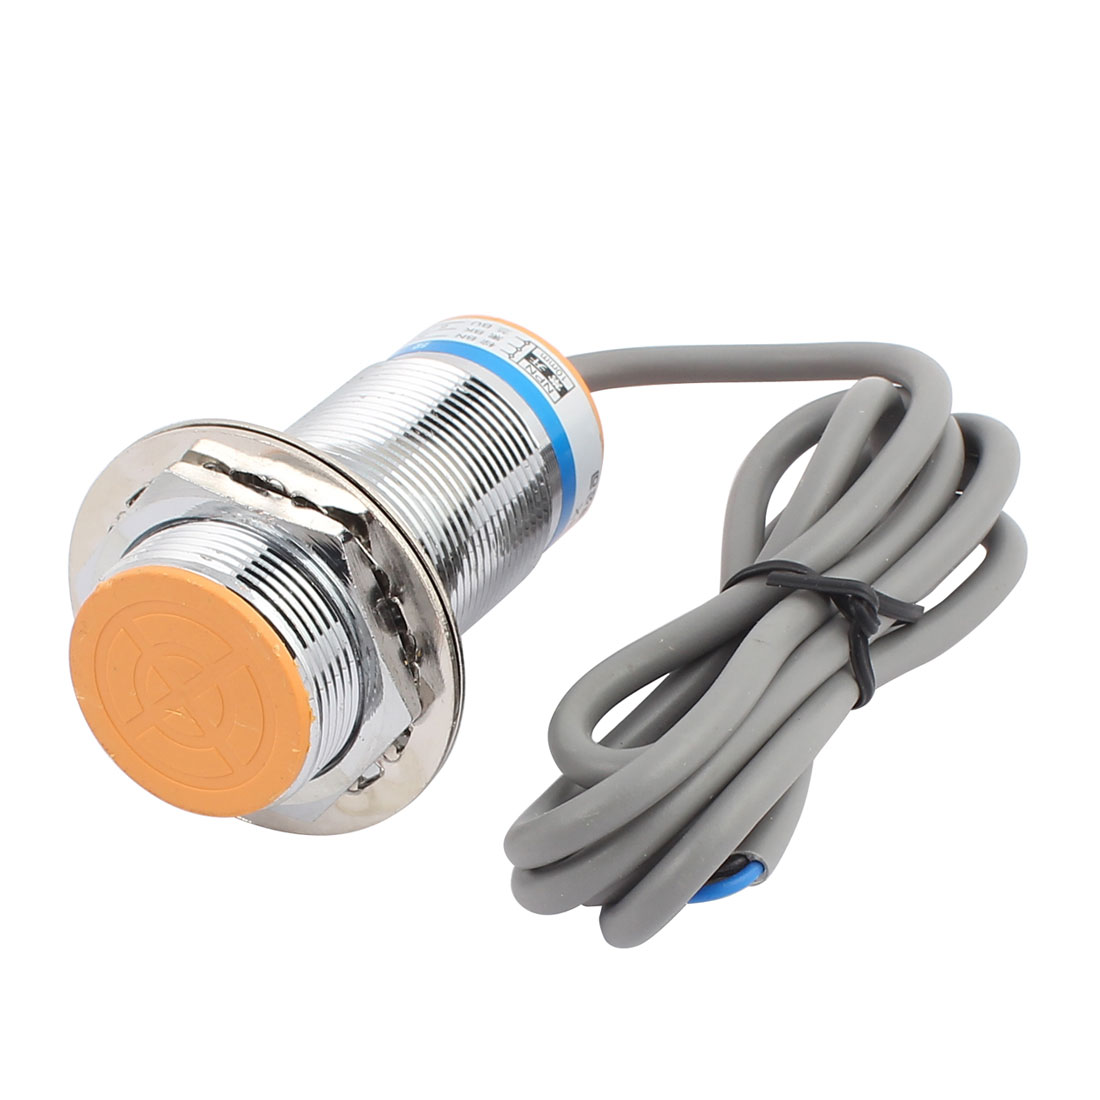 LJ30A3-10-Z/BX DC 6-36V 300mA NPN NO 10mm Inductive Proximity Sensor Switch 3-wire